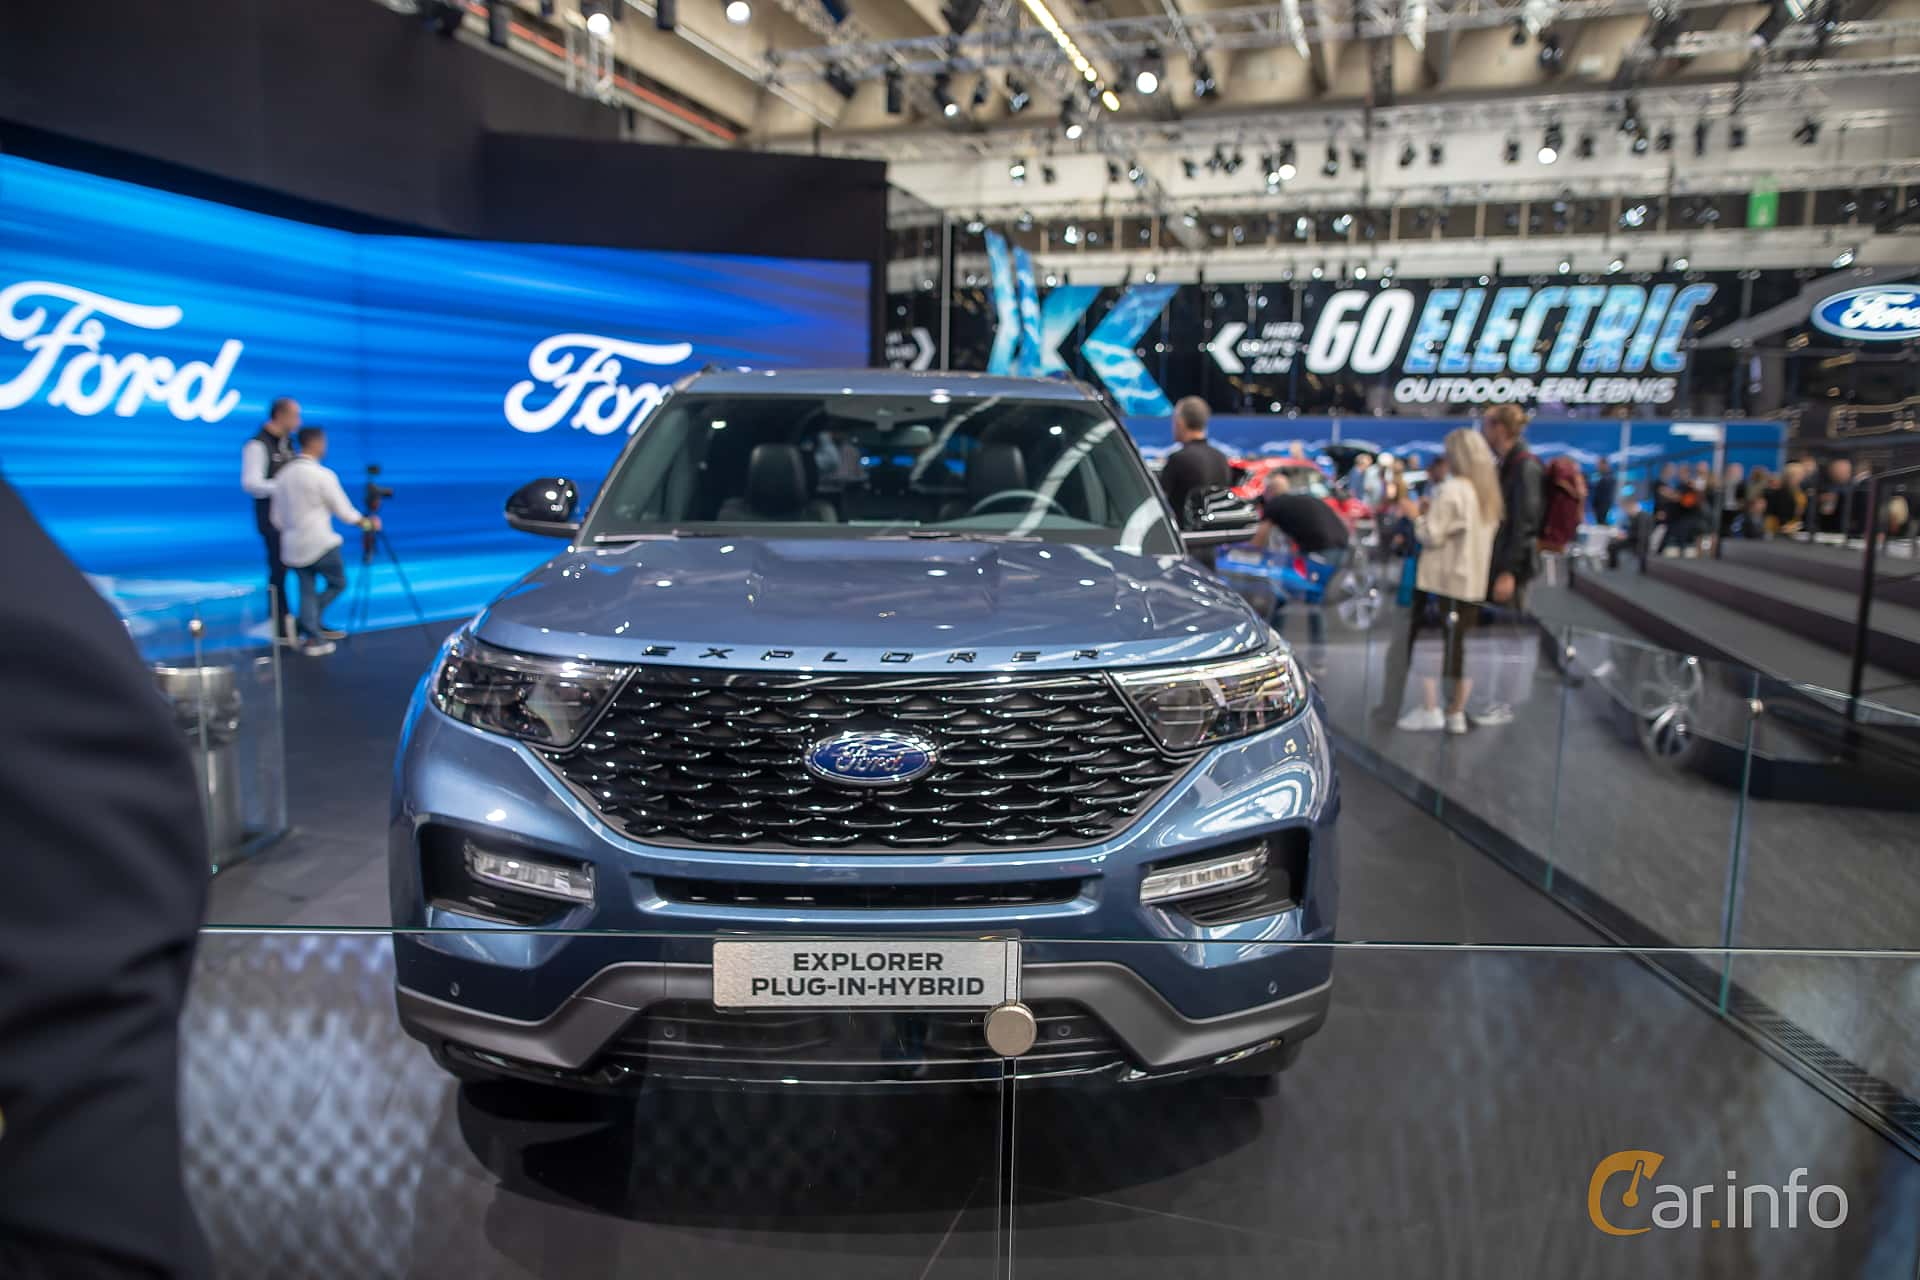 Ford Explorer Plug-In-Hybrid  Automatic, 457hp, 2020 at IAA 2019